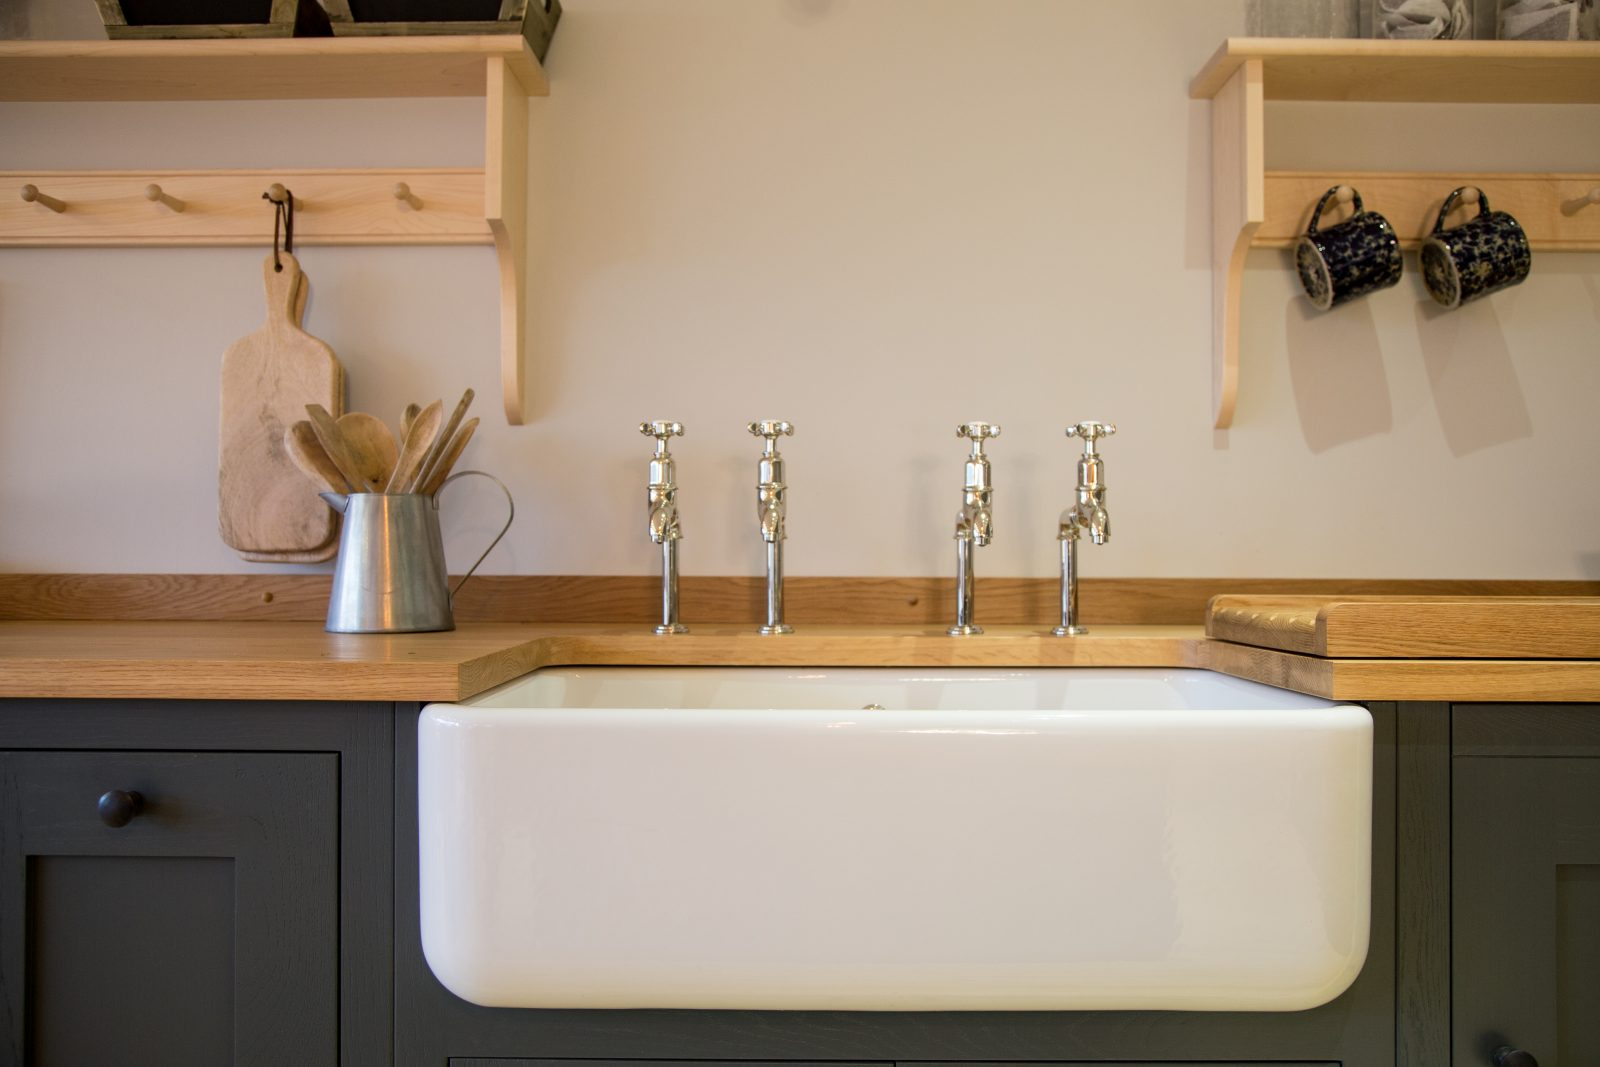 Belfast farmhouse sink with double Perrin & Rowe taps